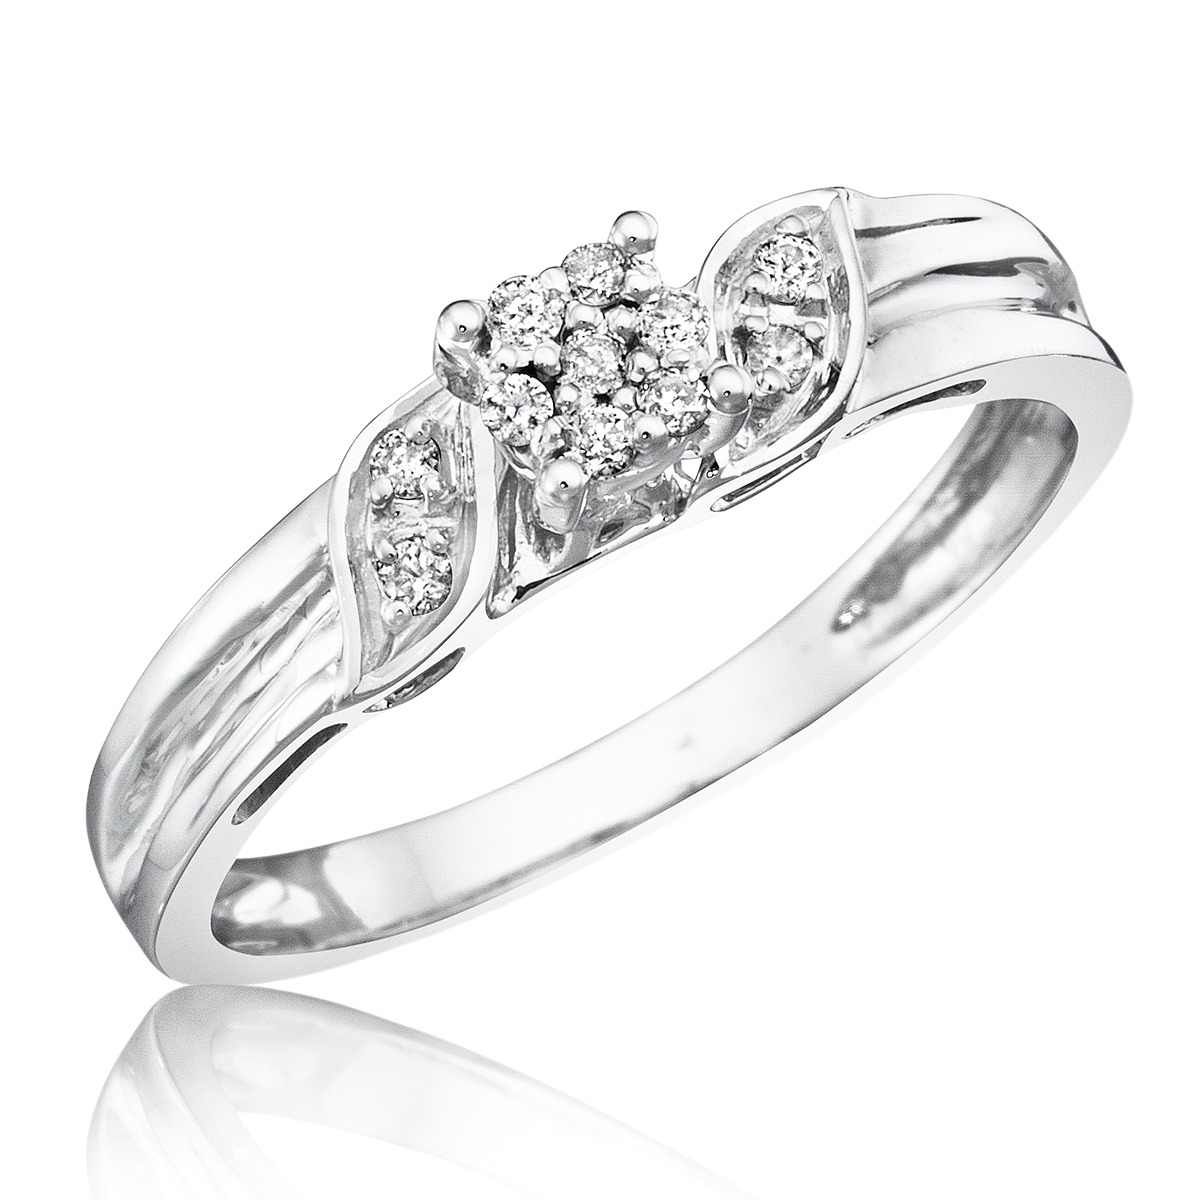 Women39;s Engagement Ring 10K White Gold  My Trio Rings  BT133W10KE